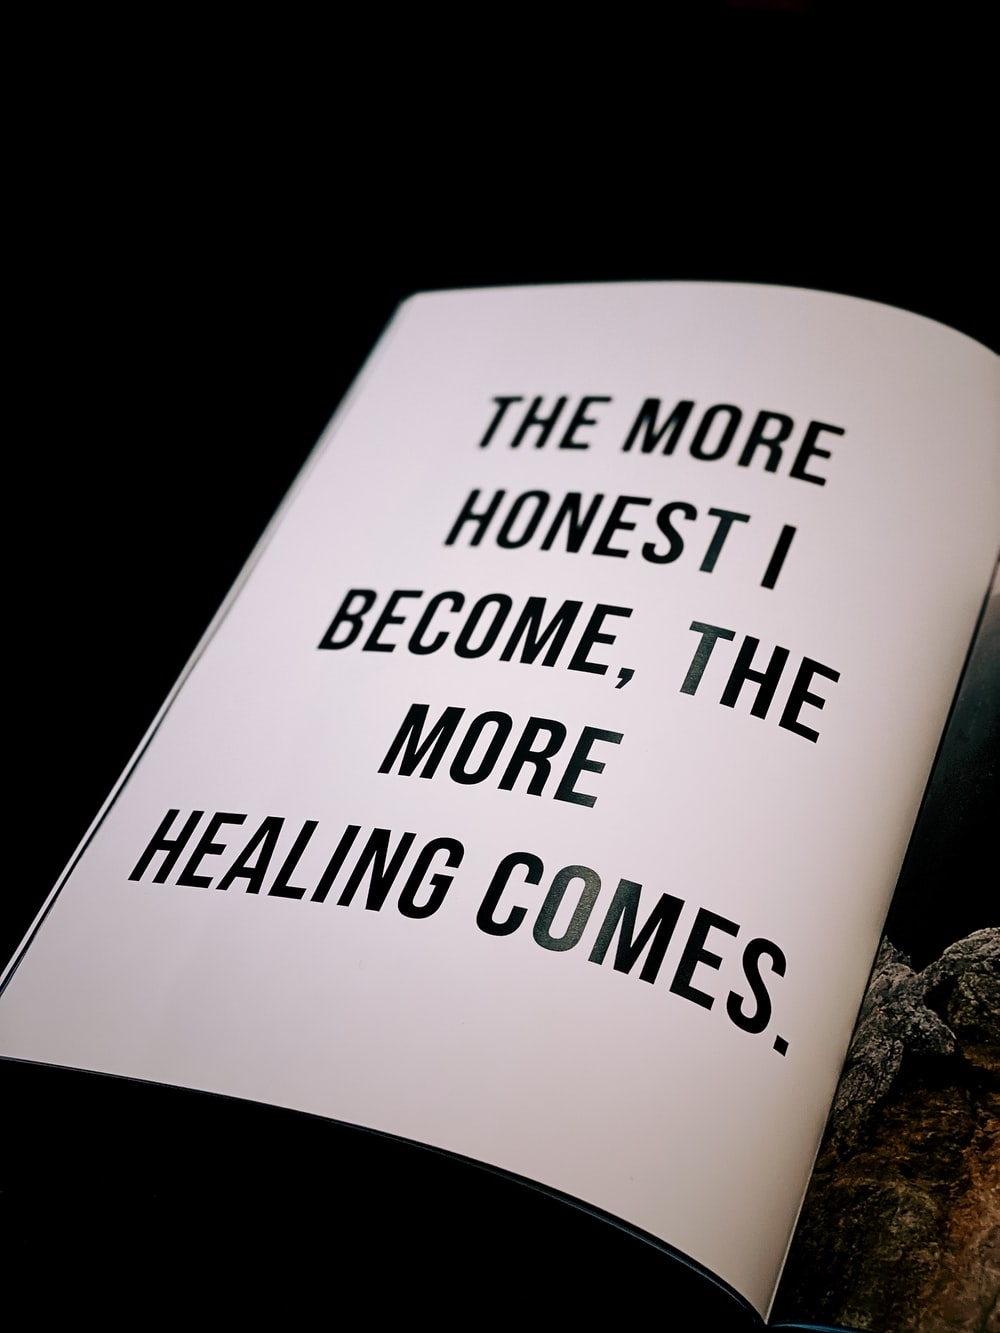 The More Honest I Become, The More Healing Comes. text